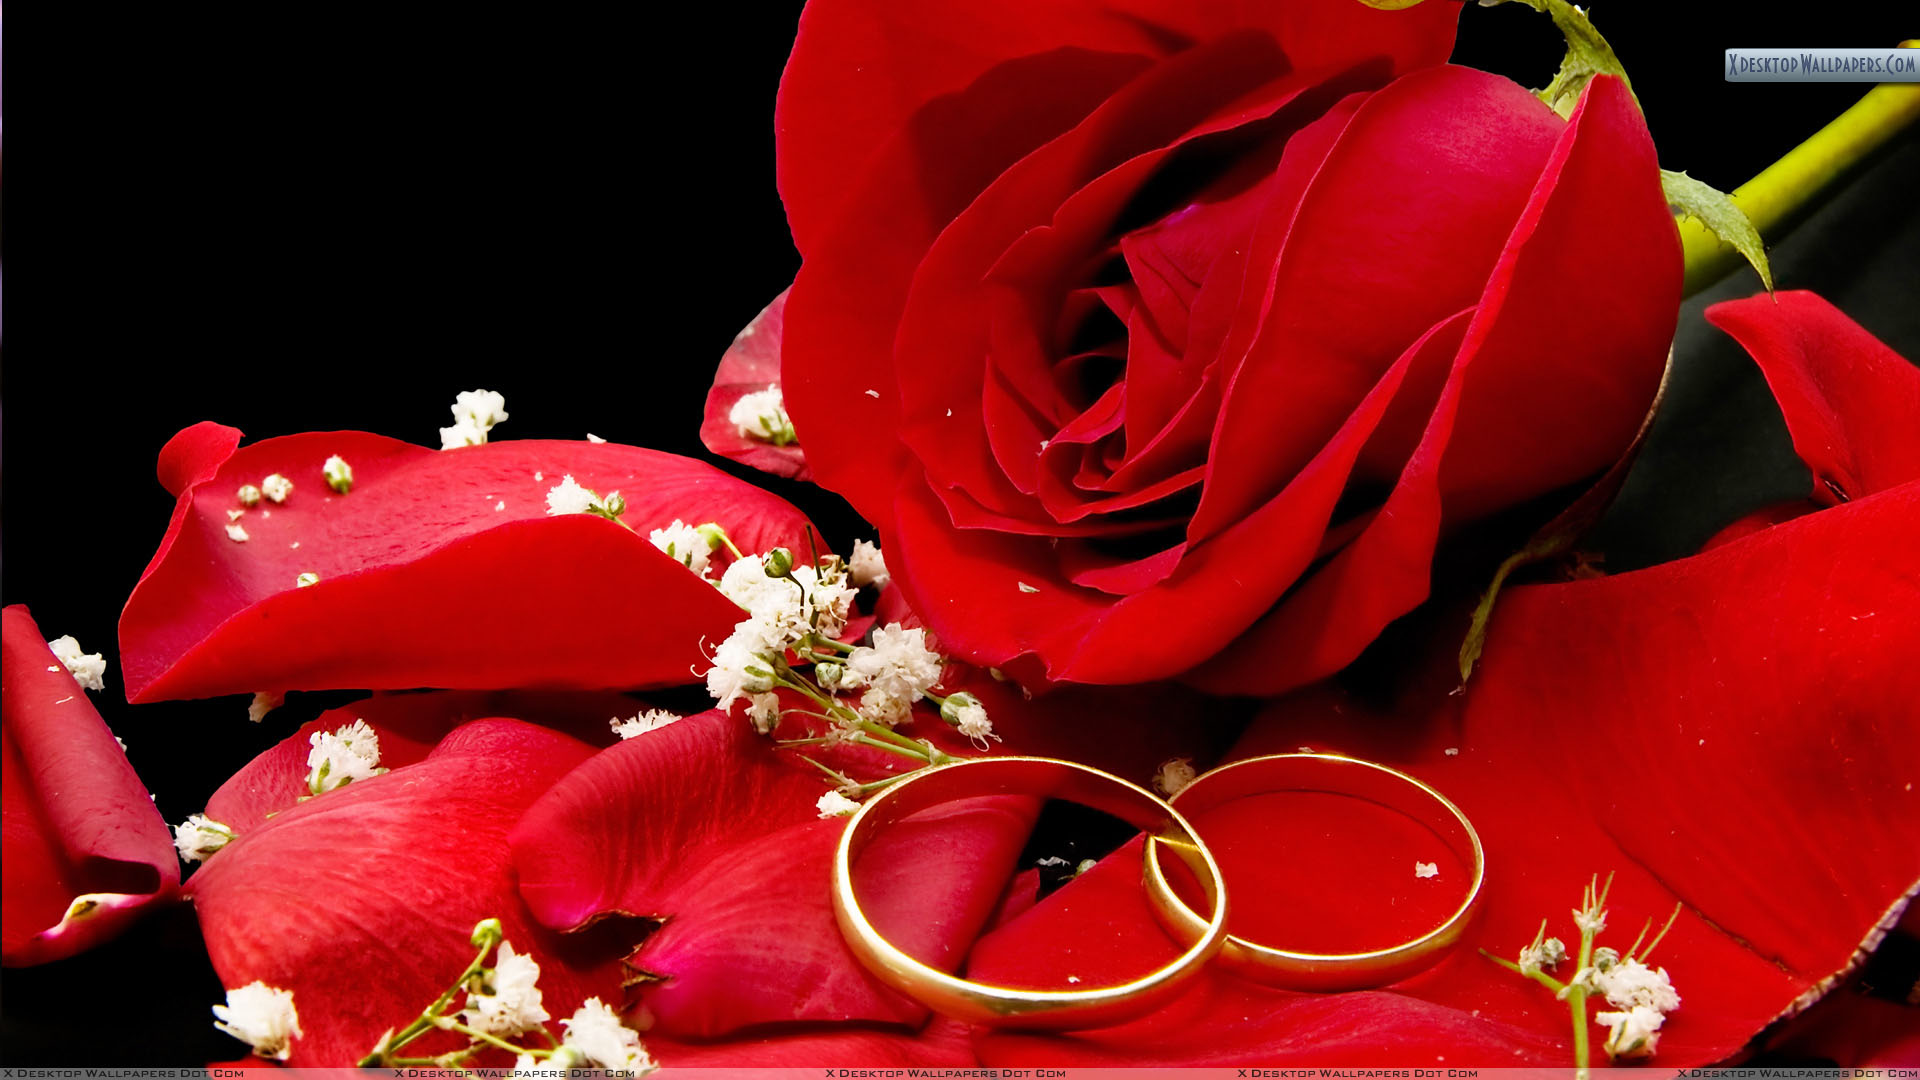 photos wedding rings download domain rose free public on for red